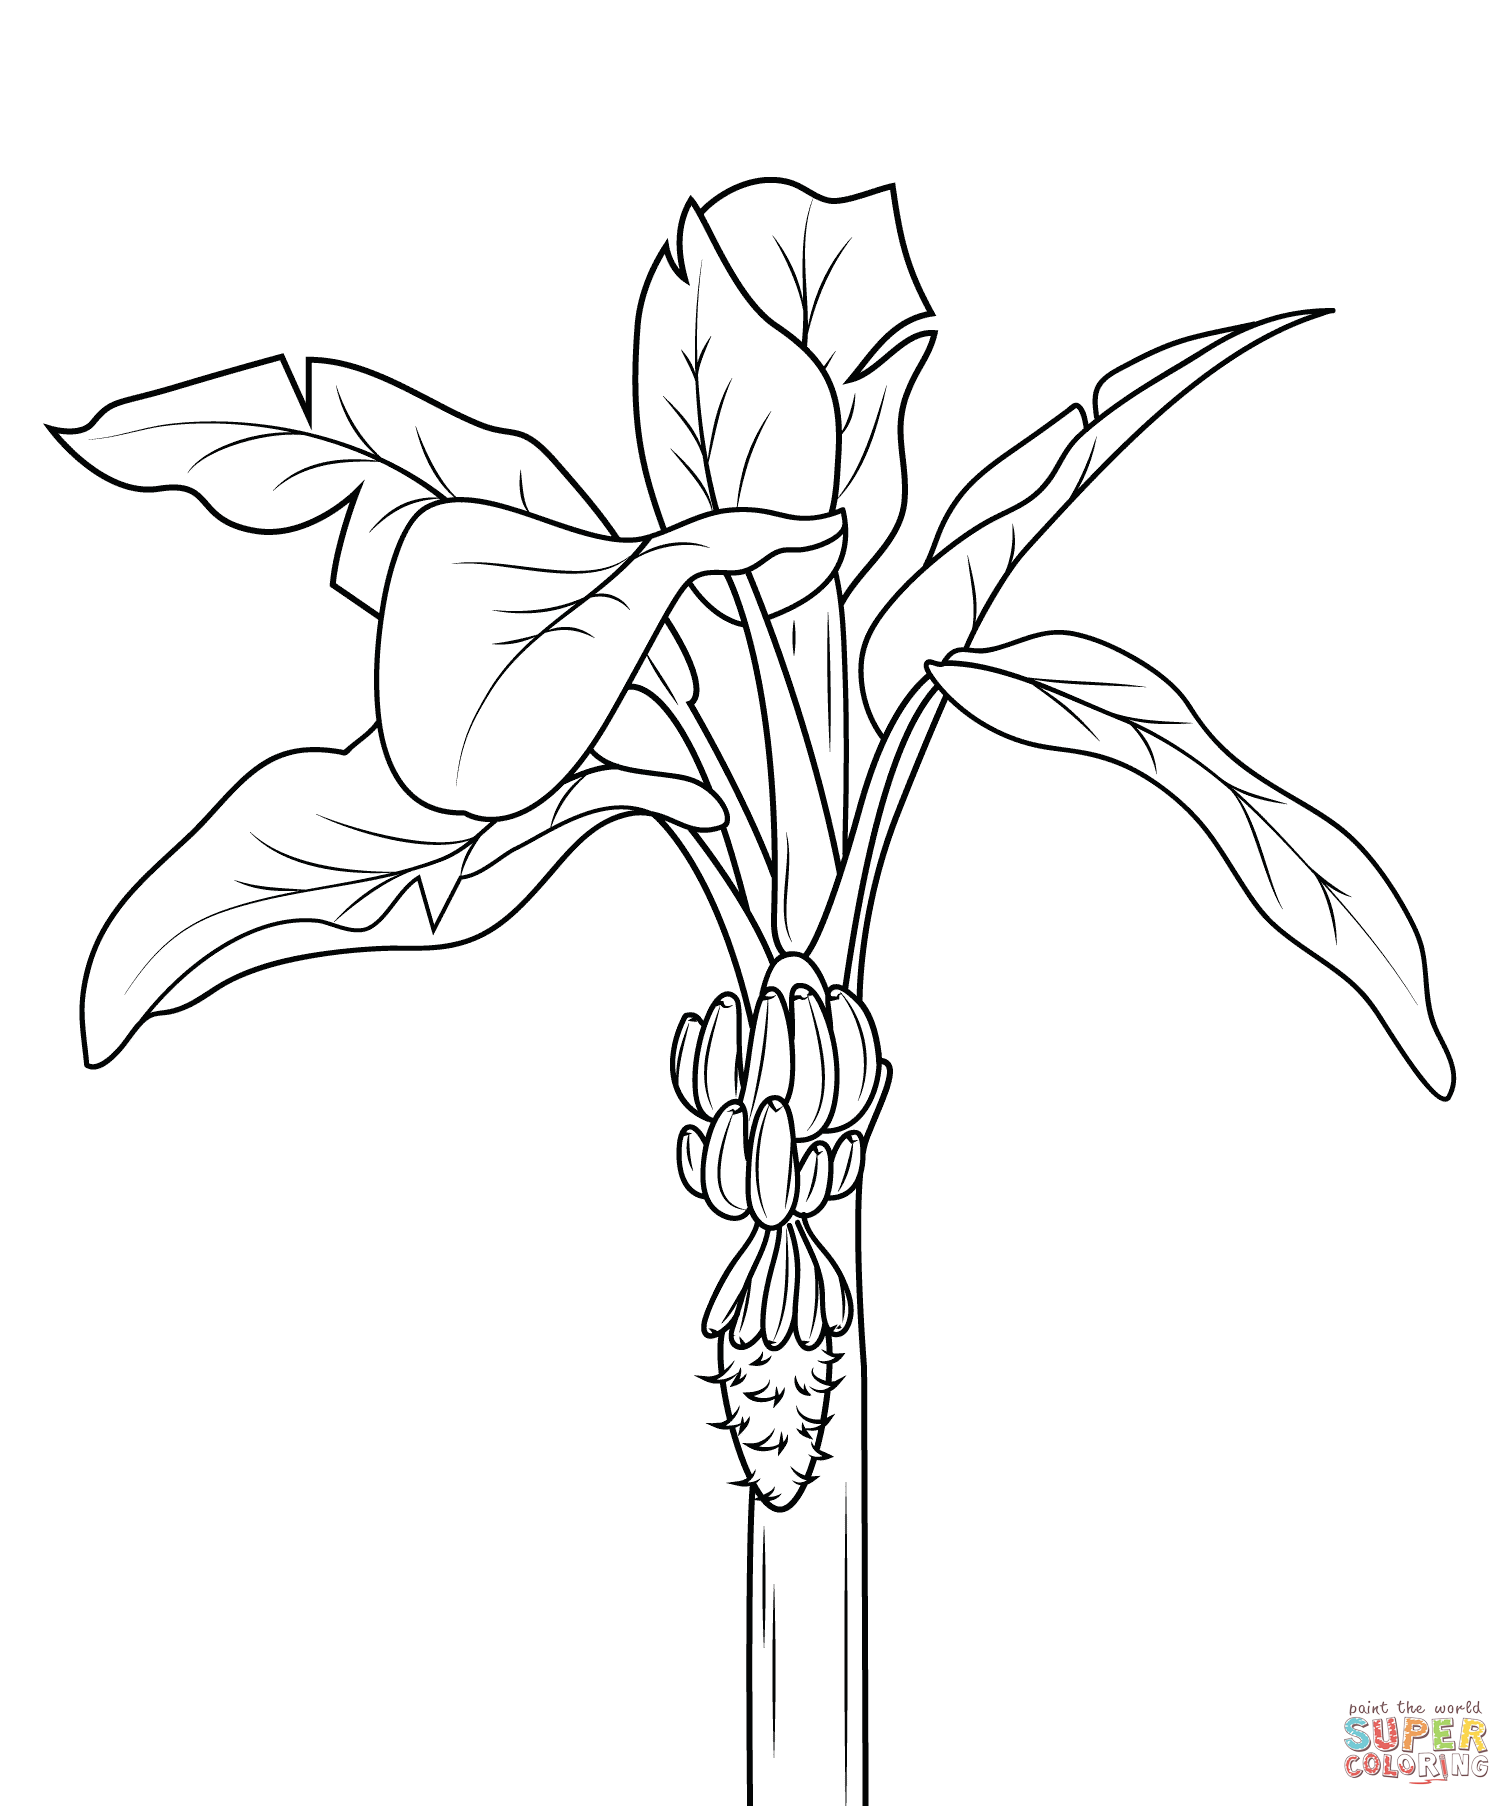 Bananas coloring pages | Free Coloring Pages